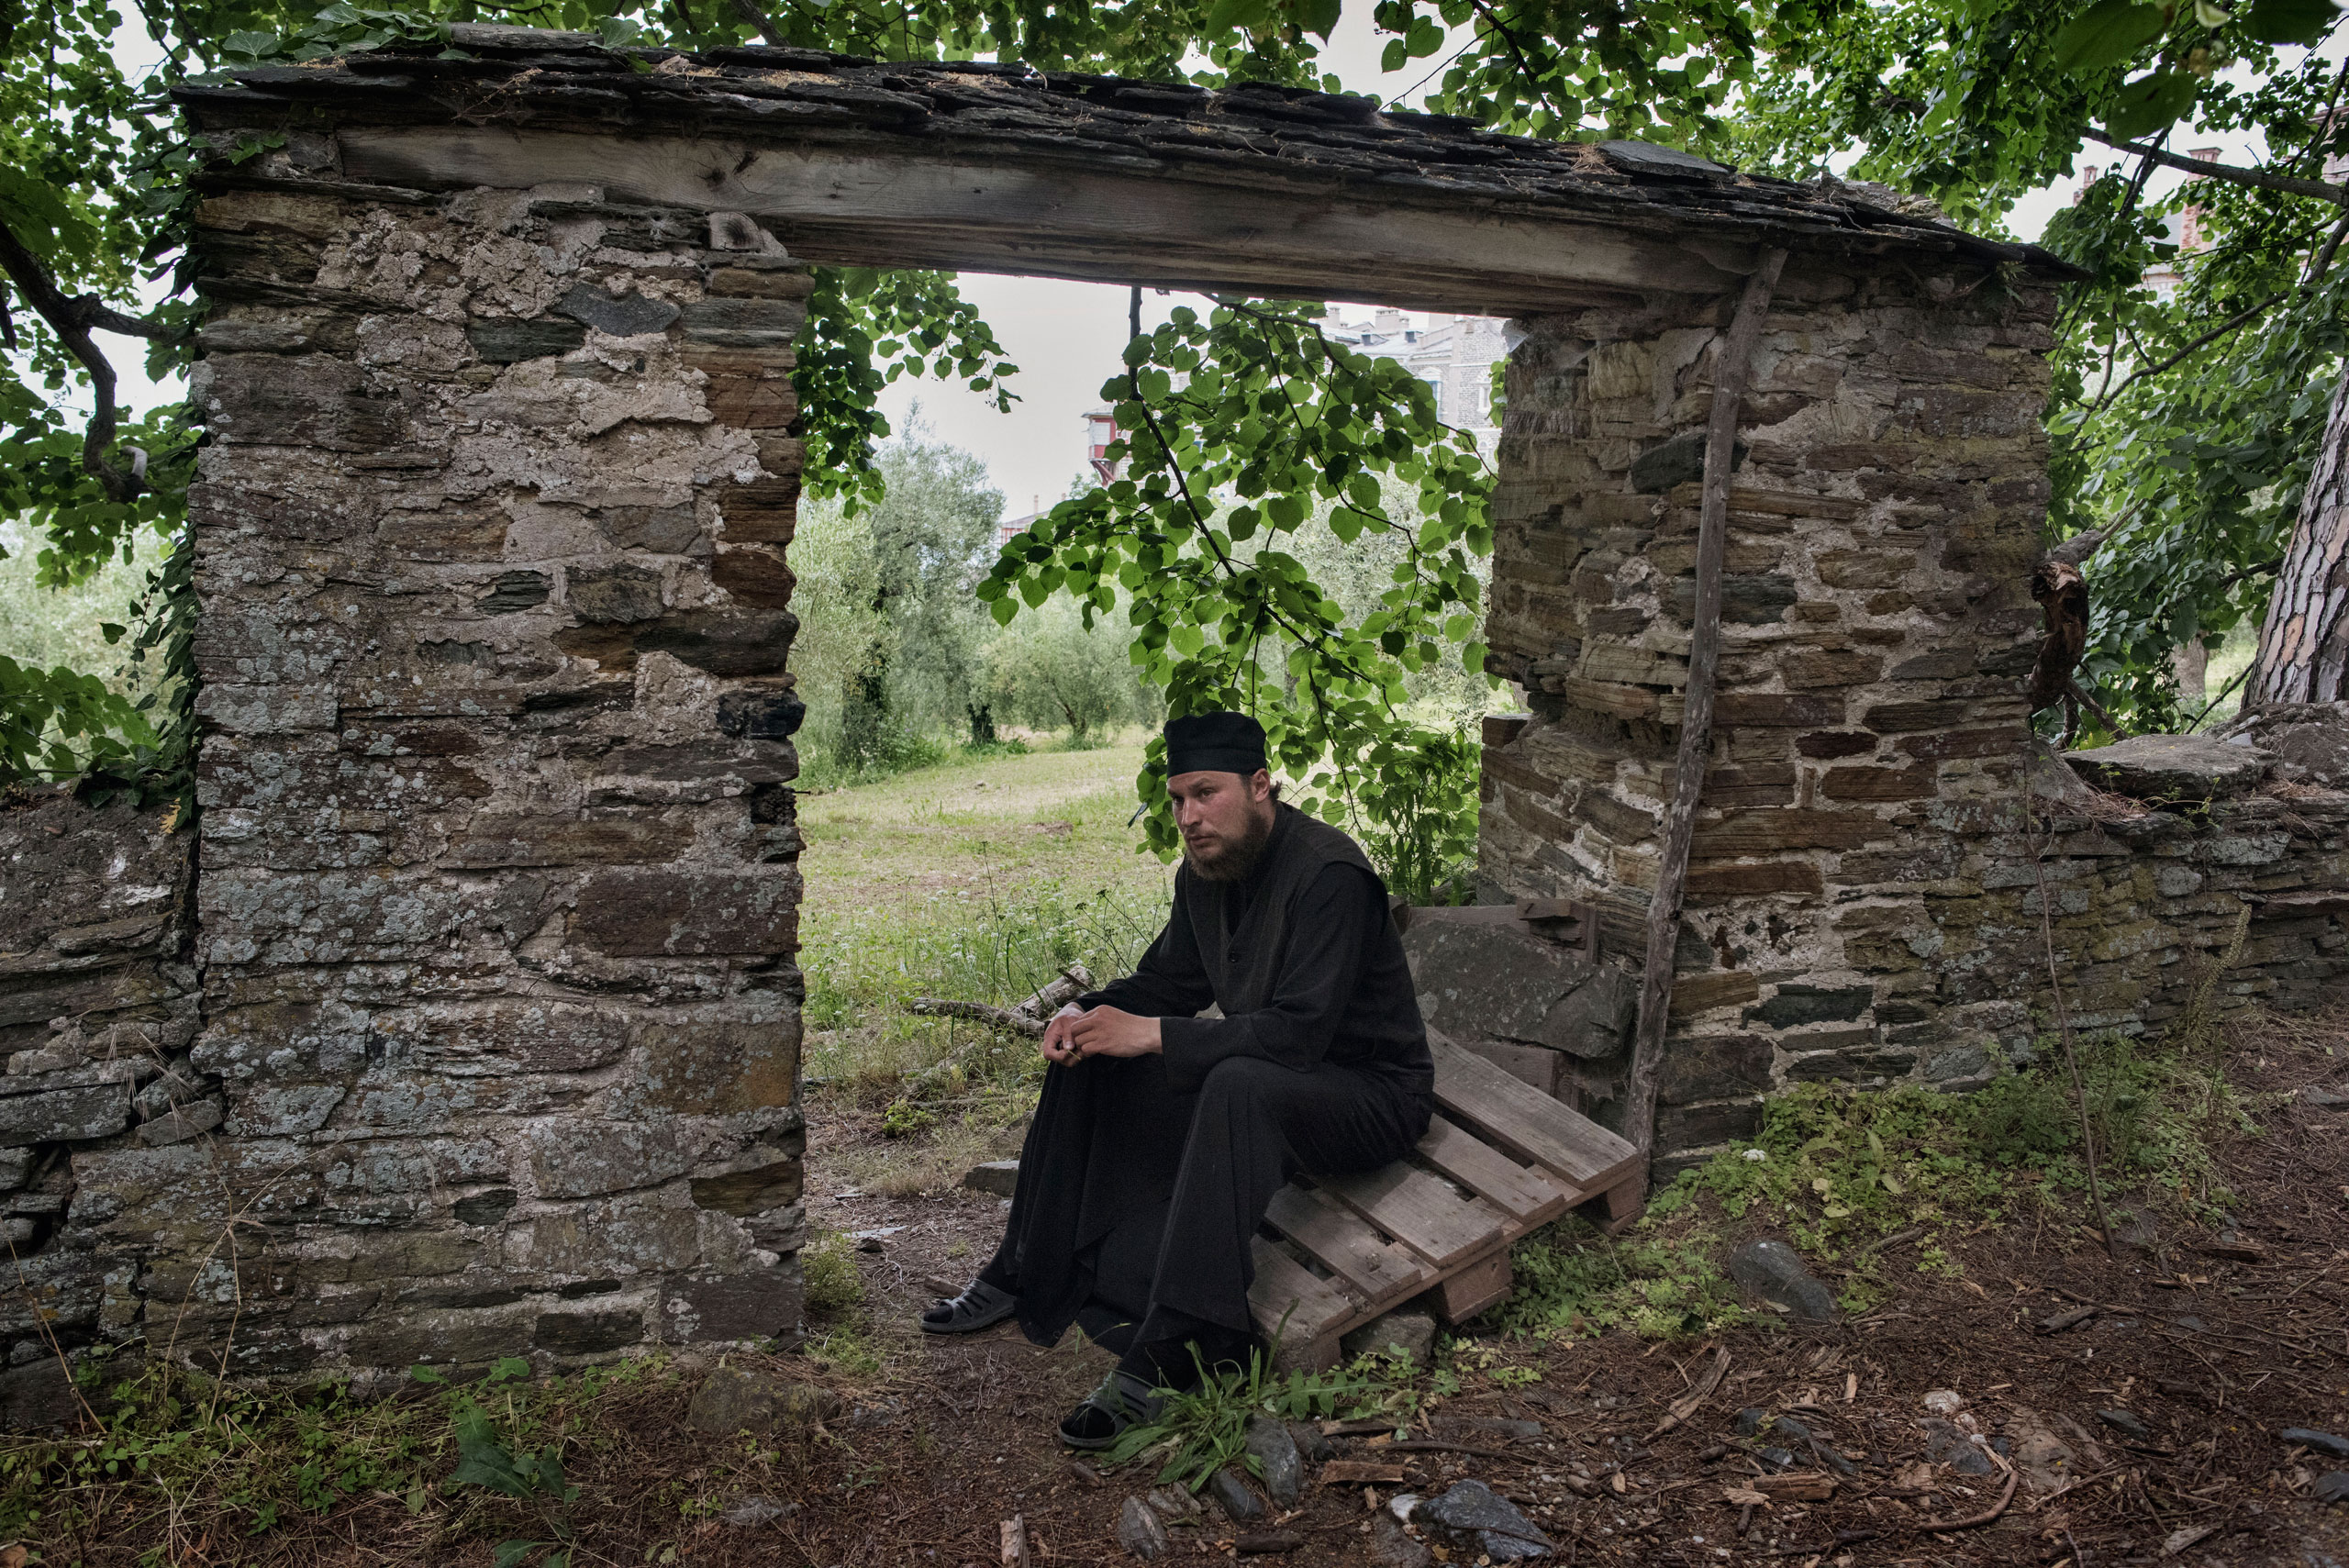 Father Pavel, a 32-year-old Orthodox monk from the Russian city of Nizhny Novgorod, rests on the grounds of the Greek monastery of Vatopedi on Mount Athos, a self-governing community of Orthodox Christian monks in northern Greece, May 29, 2016. Having moved to Mount Athos from Russia four years ago, Father Pavel has not been allowed to join the brotherhood of monks at Vatopedi, the largest Greek monastery on the peninsula, in part because he says Russian monks are  feared  and discriminated against on Mount Athos.